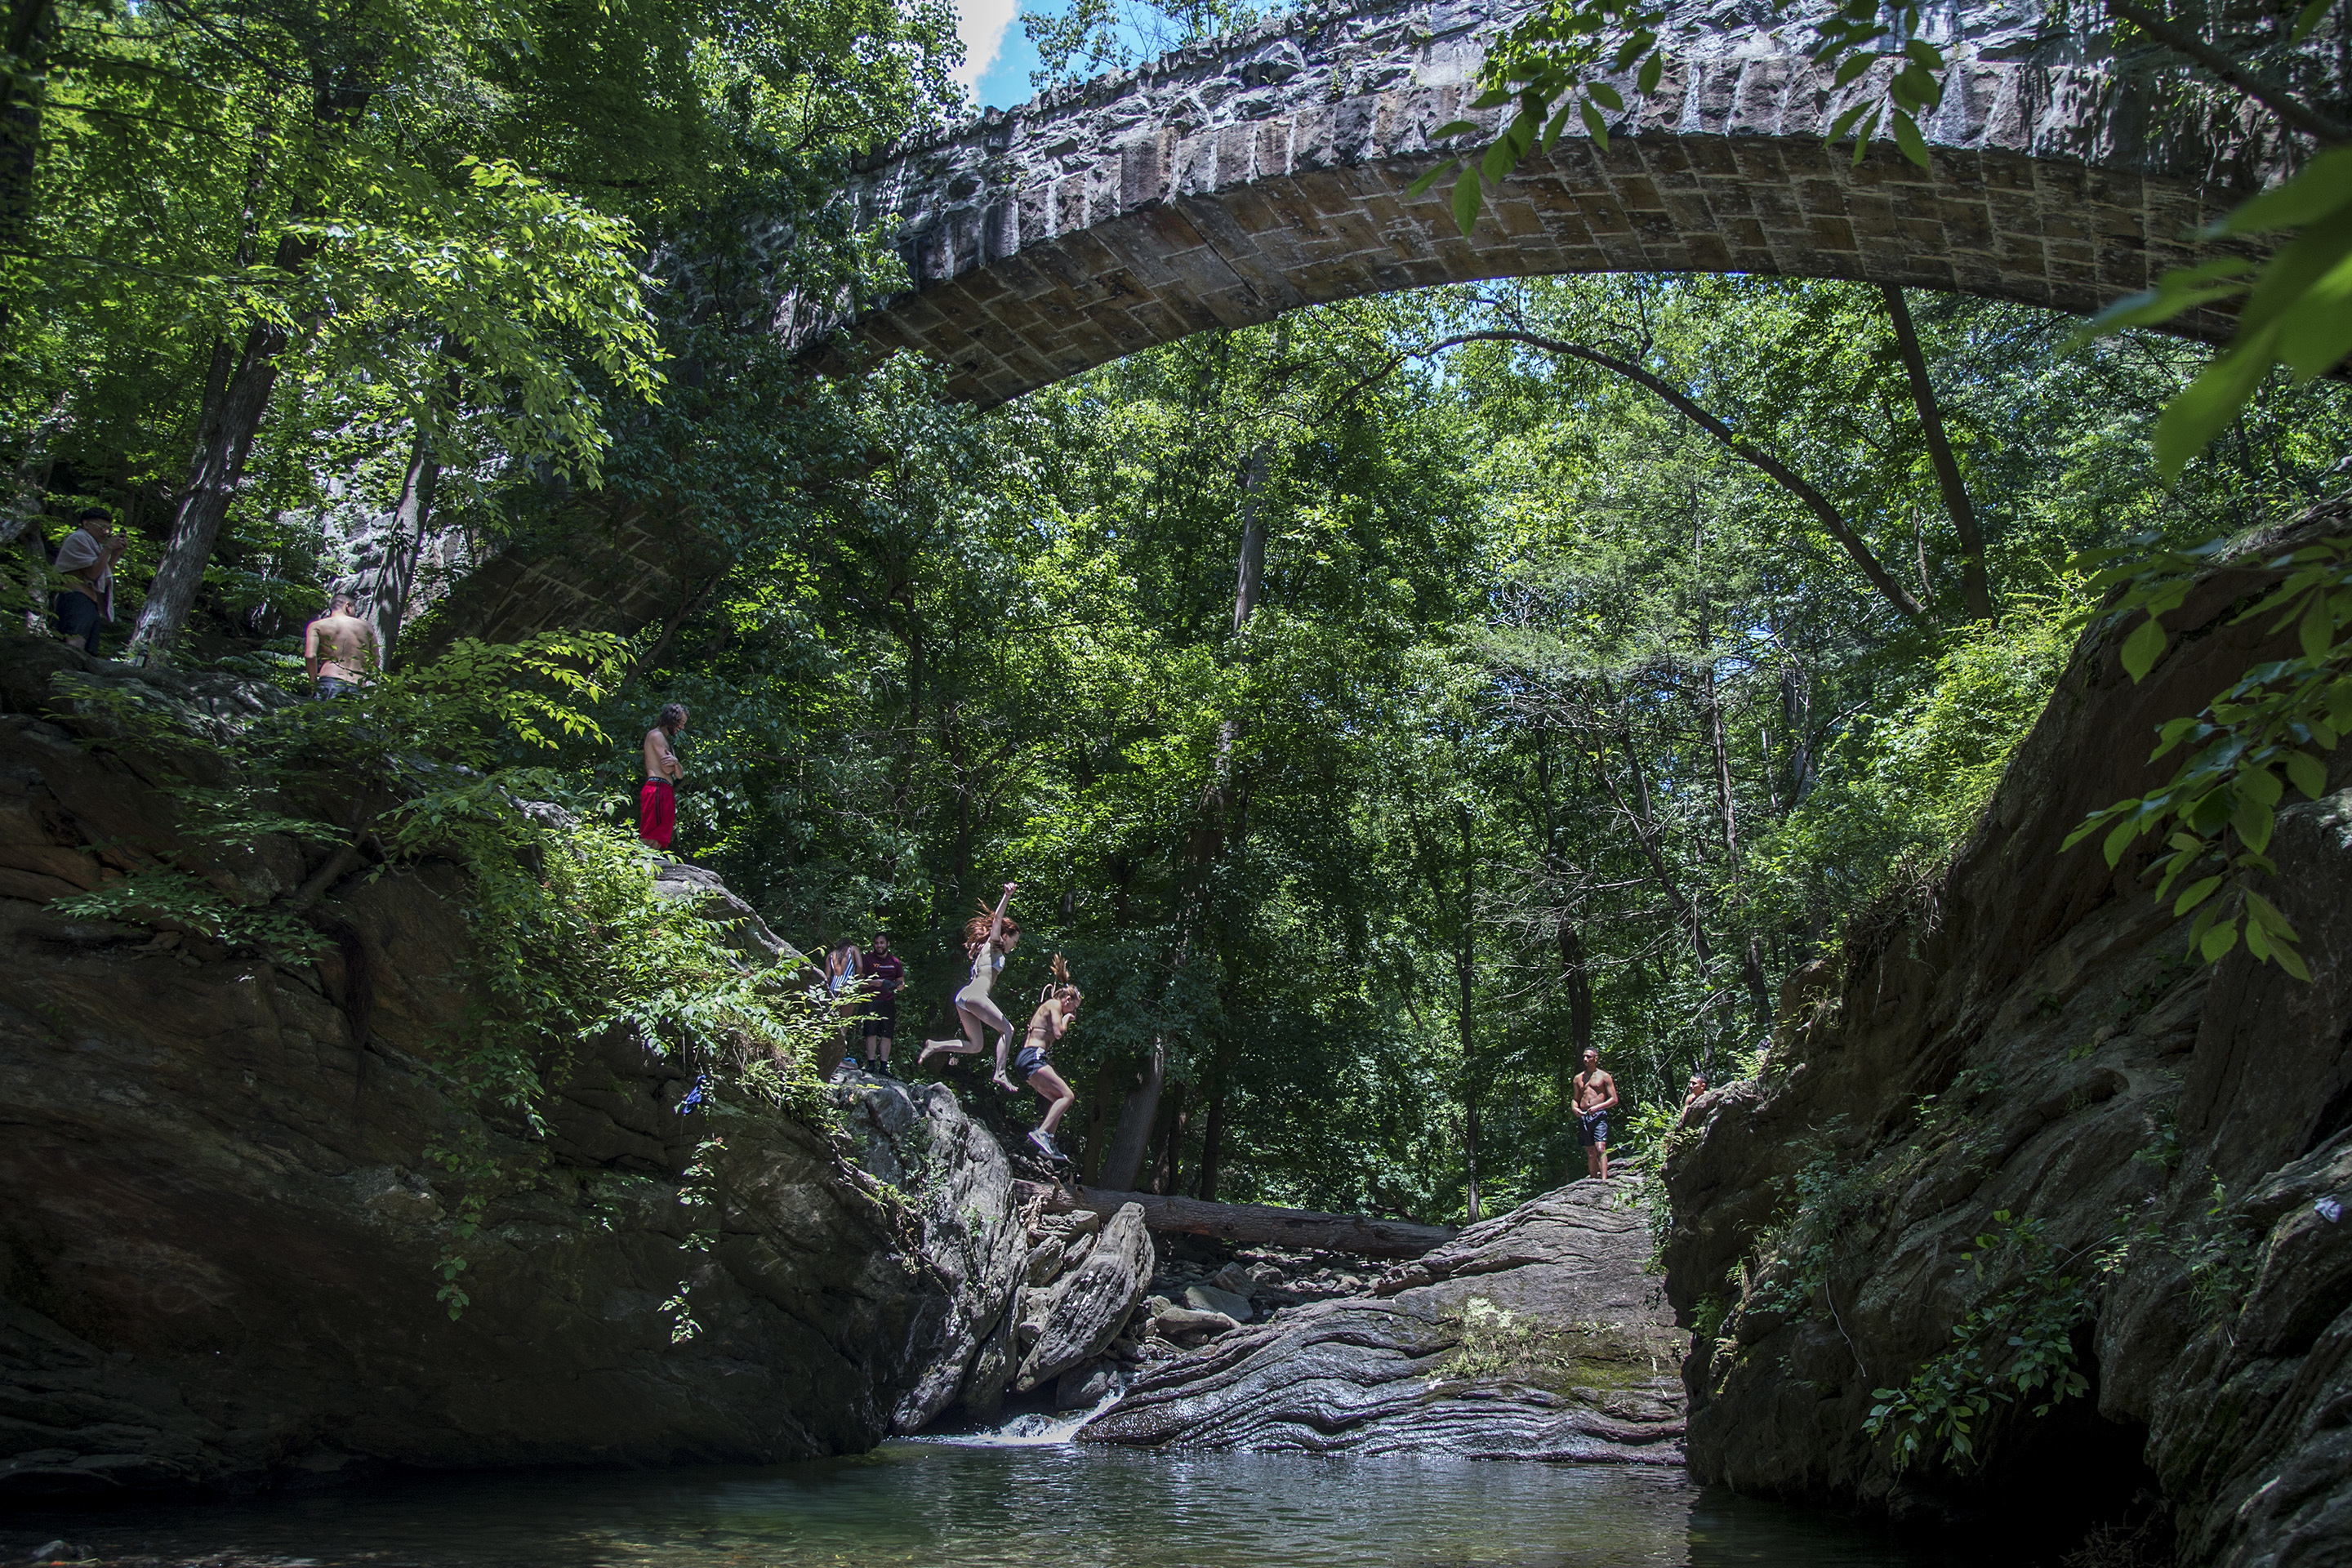 Two girls jump off the rocks at Devil's Pool in the middle of the Wissahickon creek June 28, 2017. Area residents say the foot traffic has gotten out of control and some are calling for the 15-foot watering hole to be filled in with rocks. Complaints include: out of town cards parked on lawns, trash and people urinating on their property. CLEM MURRAY / Staff Photographer